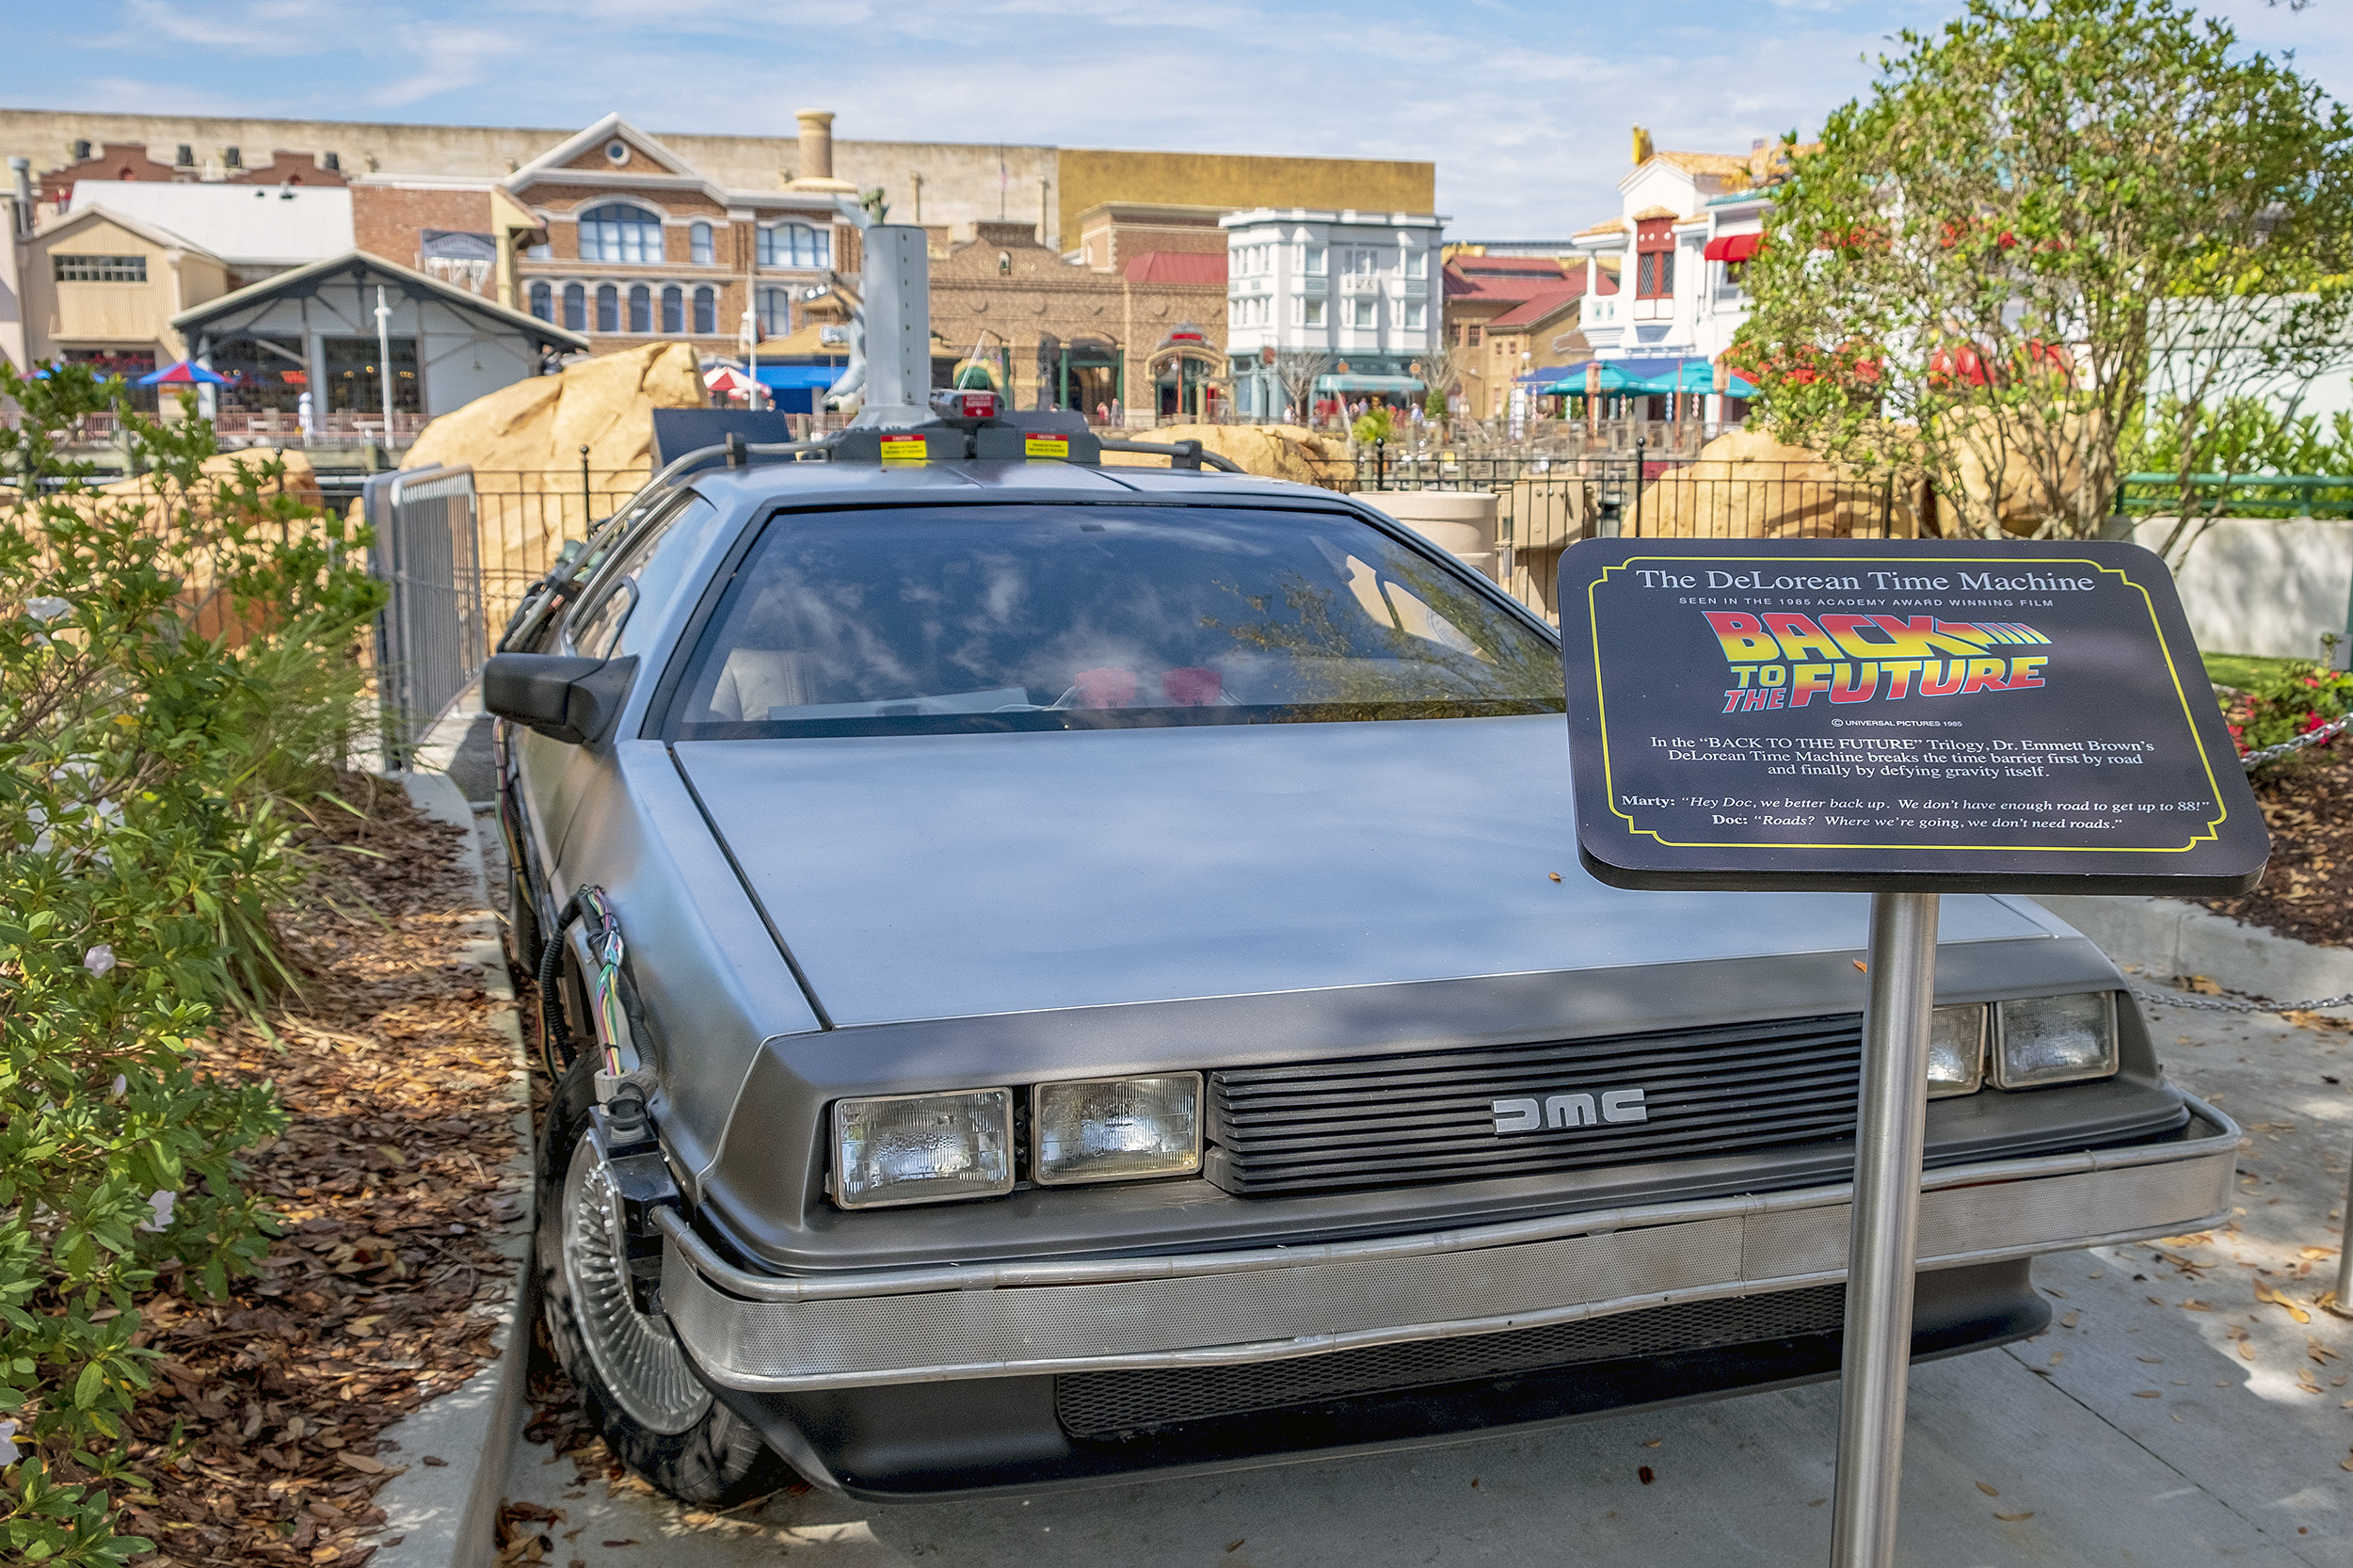 Delorean car back to the future Universal Studios Orlando